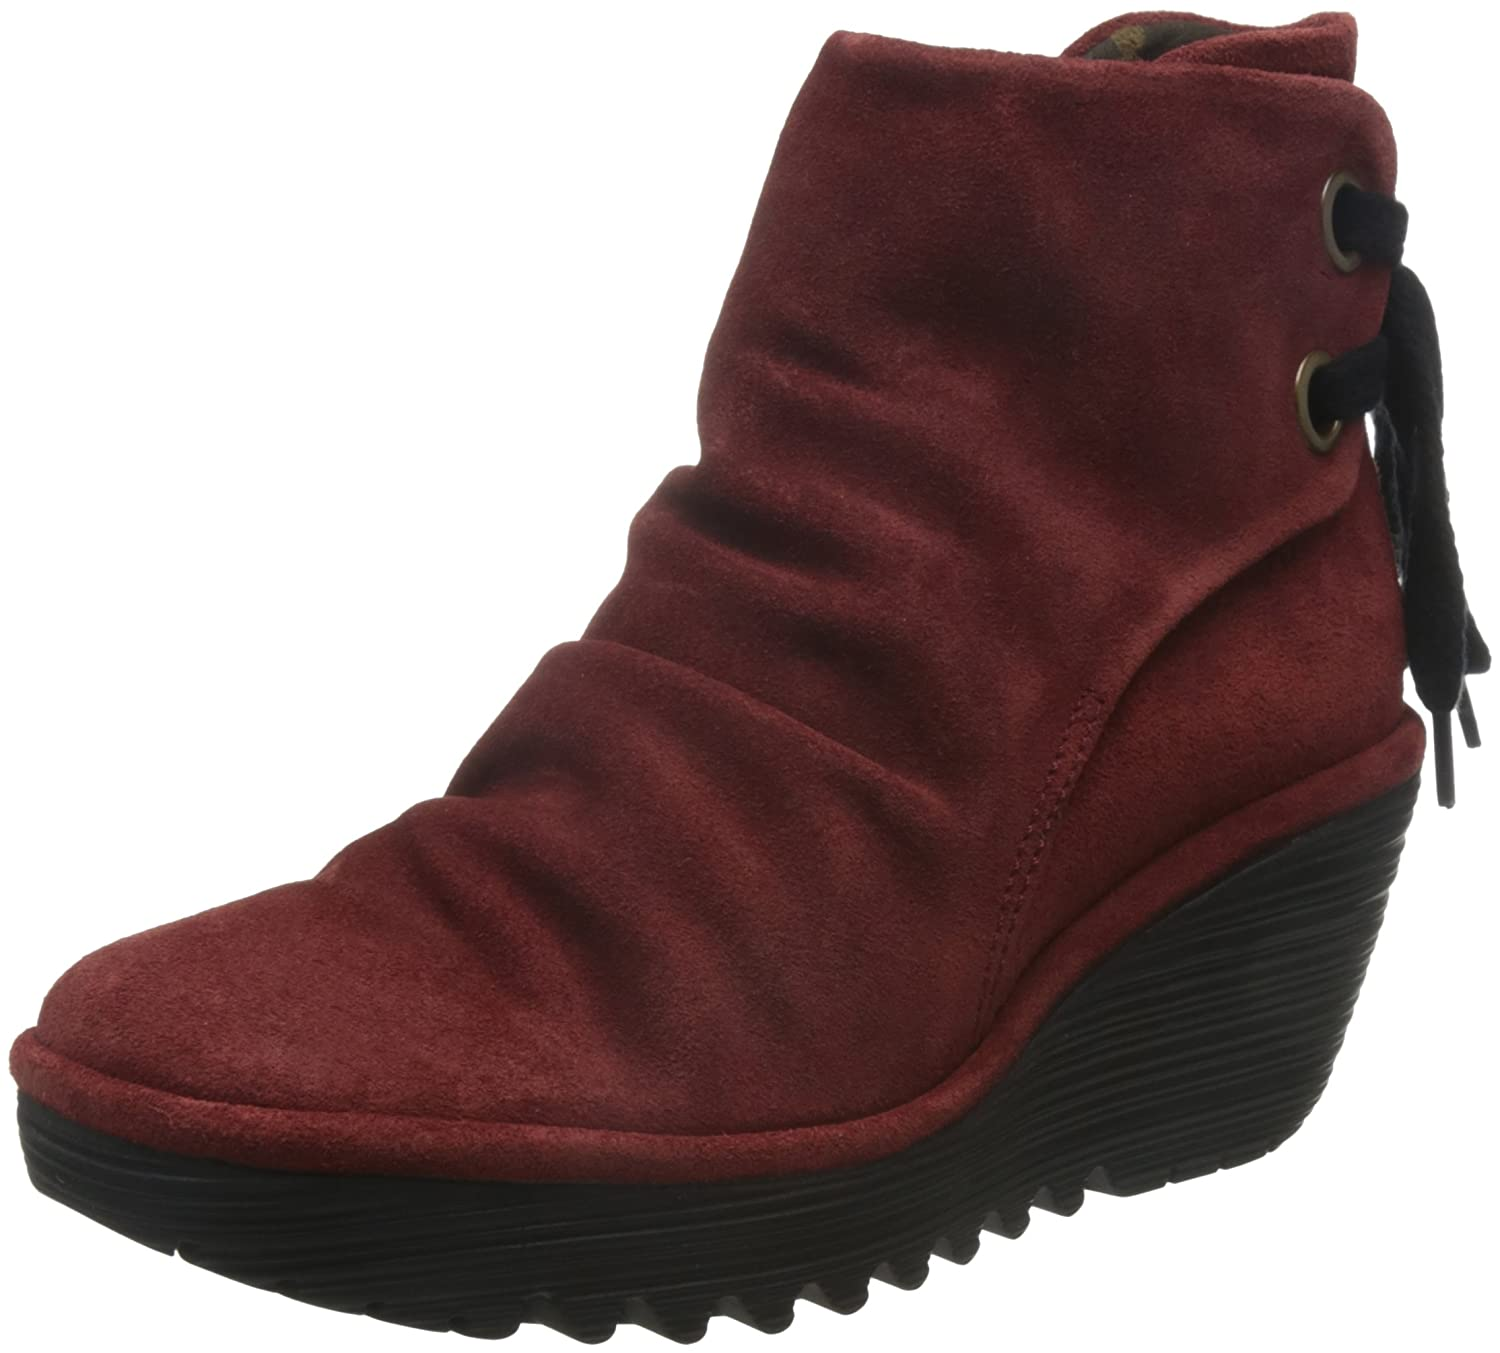 FLY London Women's Yama Ankle Boot B01E83R1BU 37 M EU / 6.5-7 B(M) US|Red